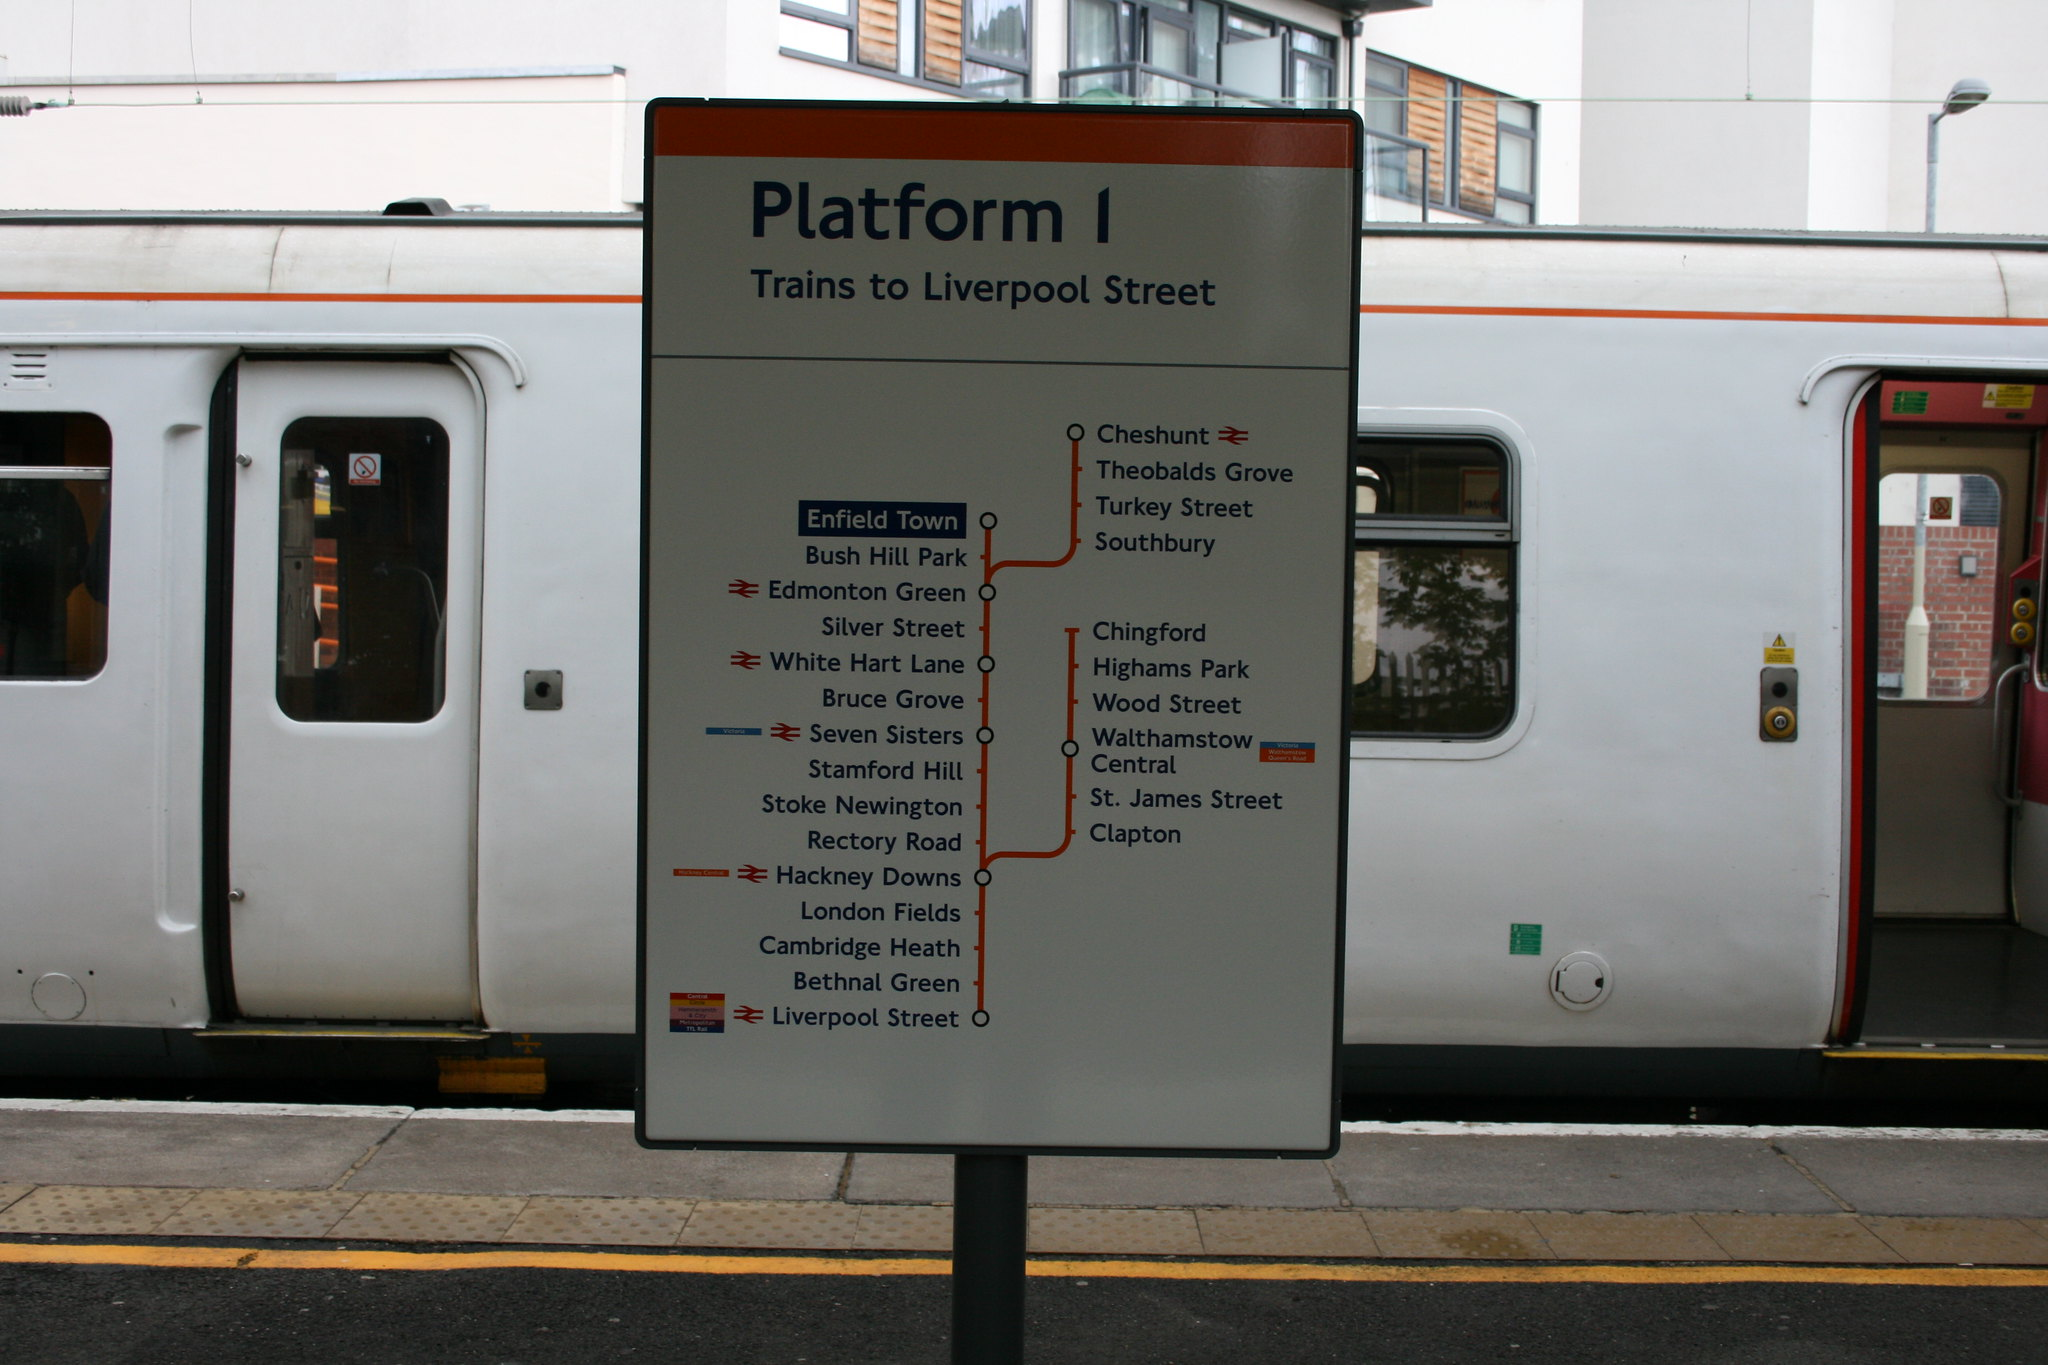 Enfield Town Overground Enfield Town Line Diagram